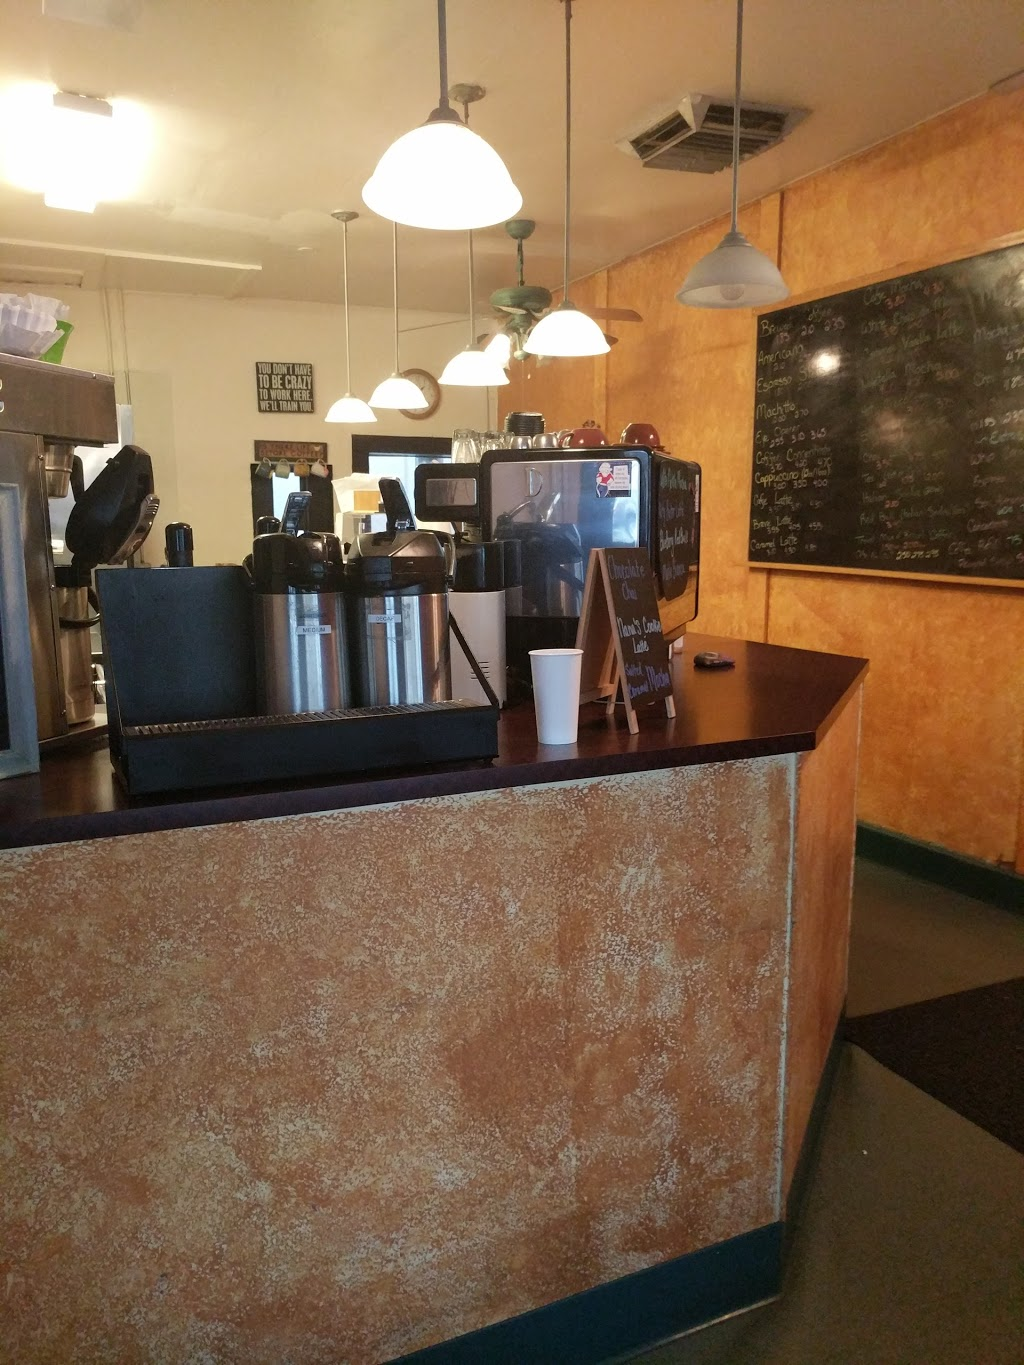 Double Ds Coffee | cafe | 9453 Main St, Upper Lake, CA 95485, USA | 7072759470 OR +1 707-275-9470